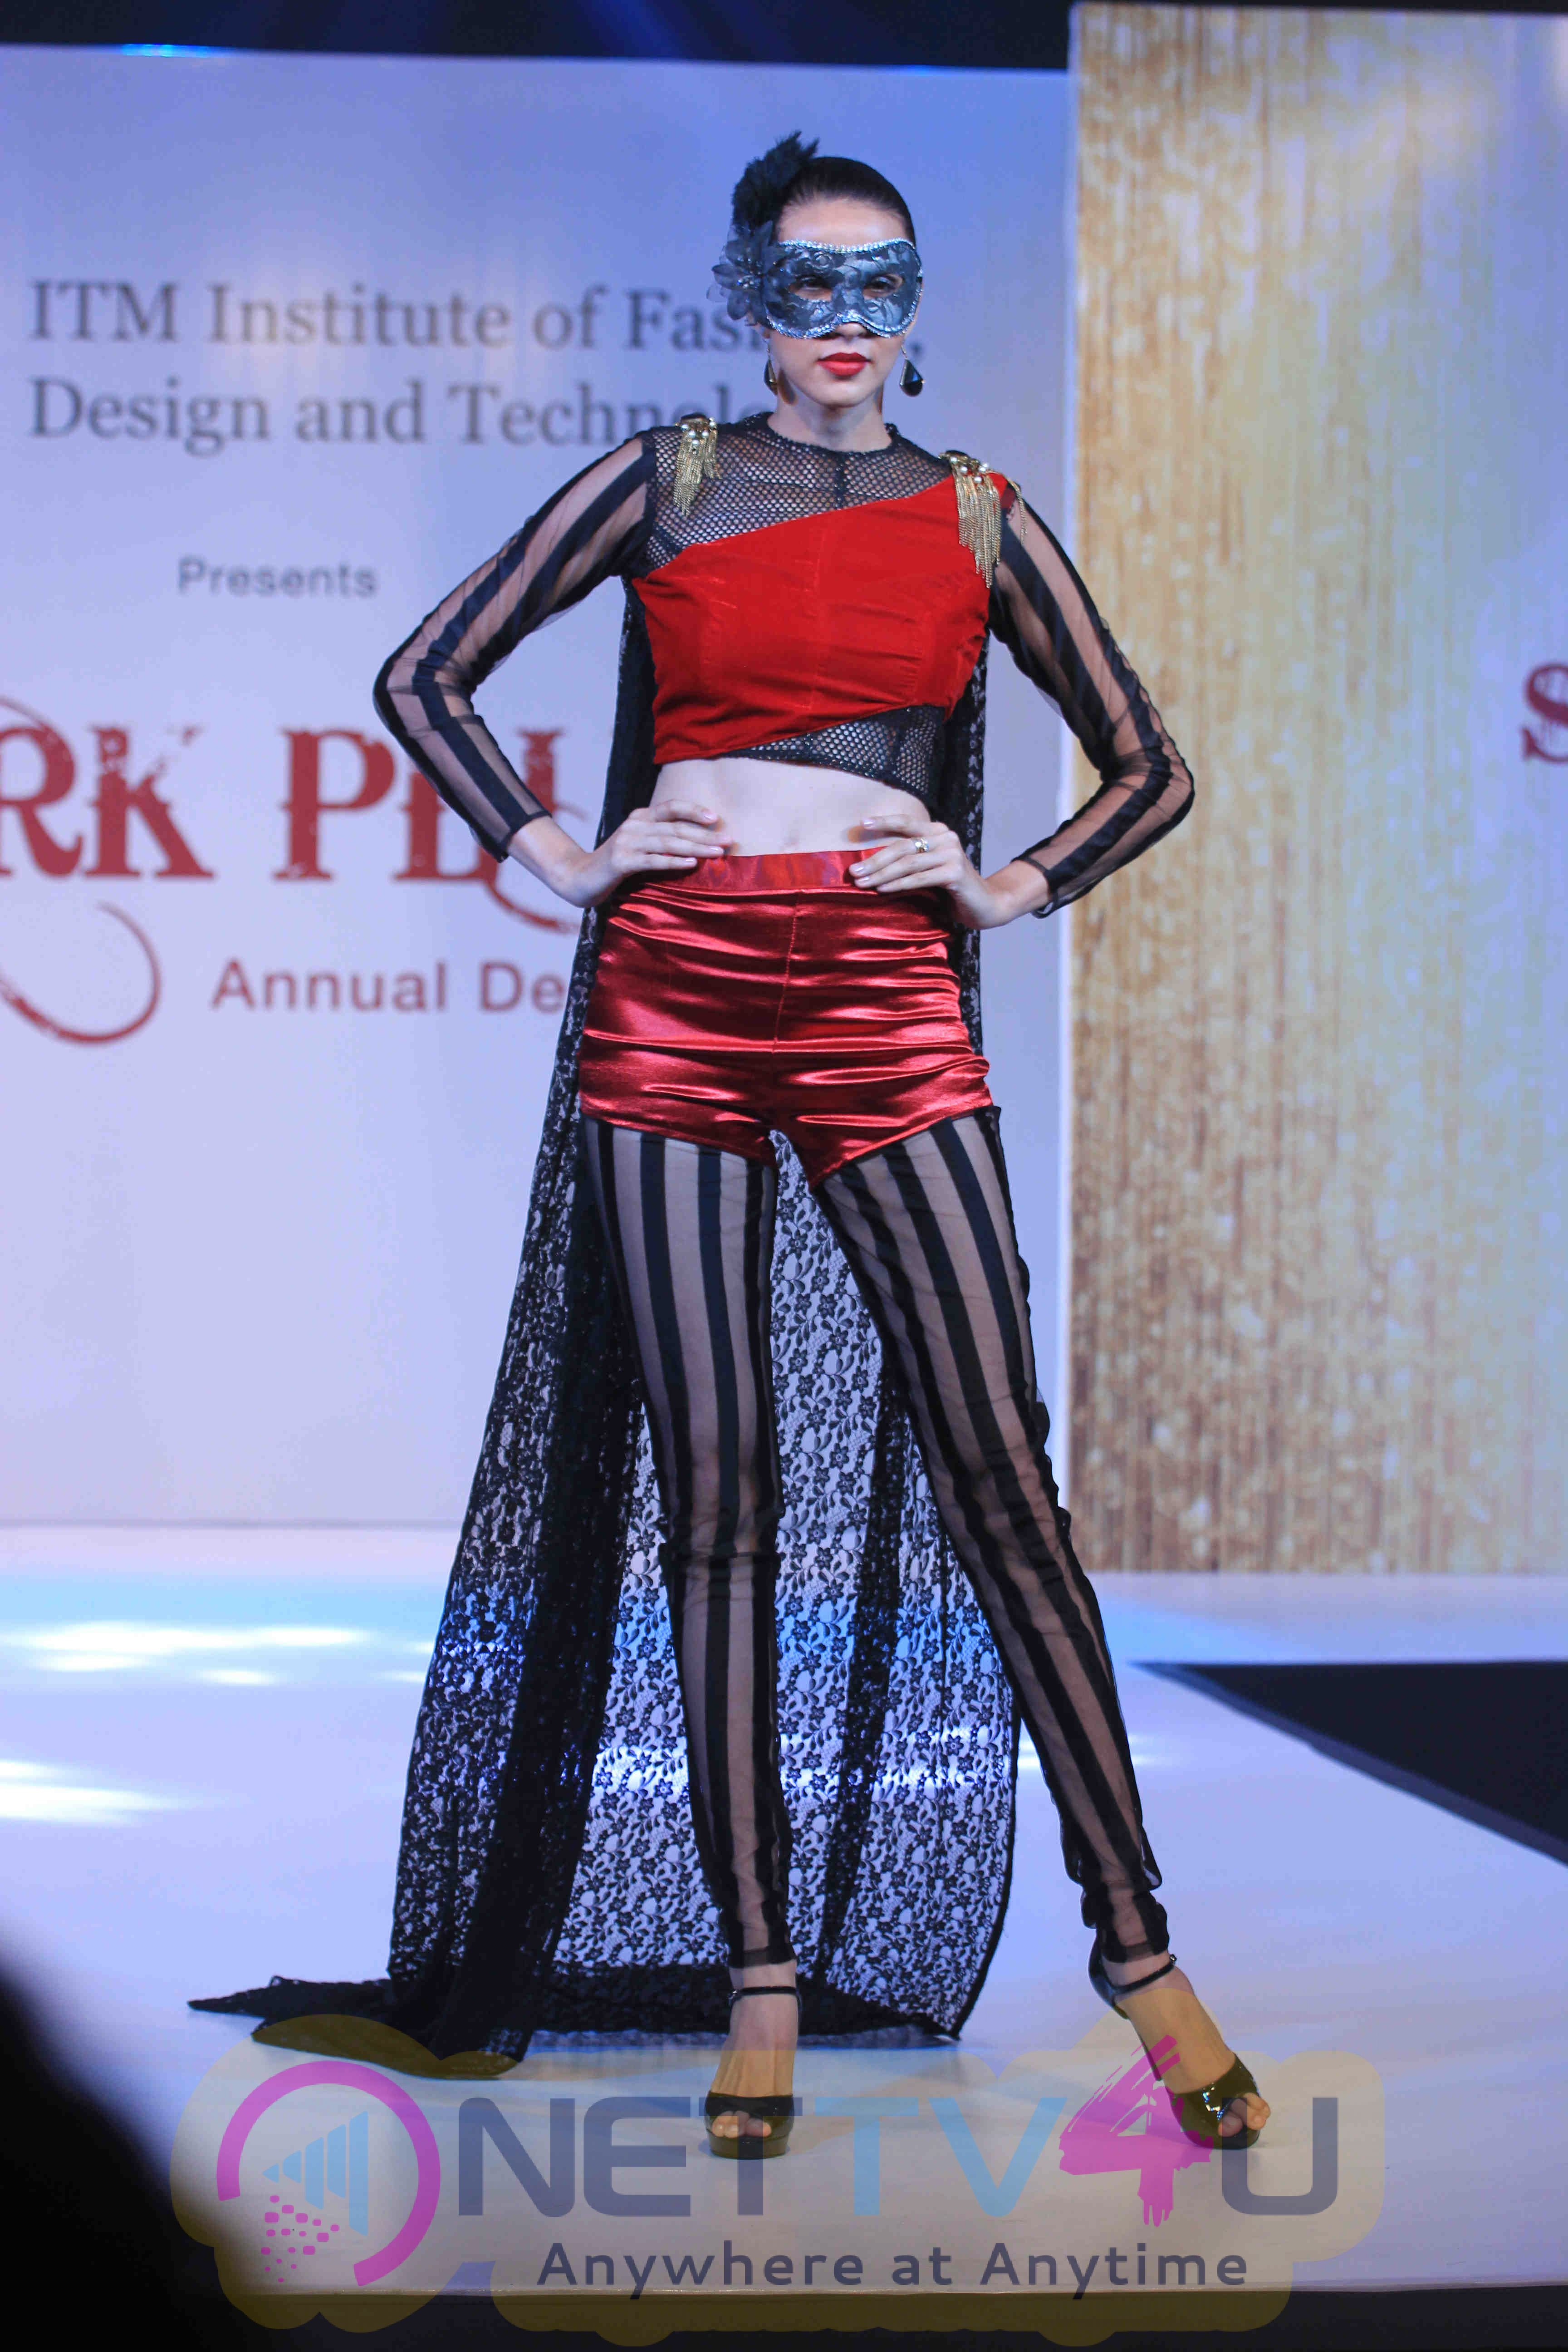 Itm Institute Of Fashion Design And Technology Invites You To Spark Plug Annual Design Show Good Looking Stills 291084 Movie Press Meet Pics Latest Event Images Stills